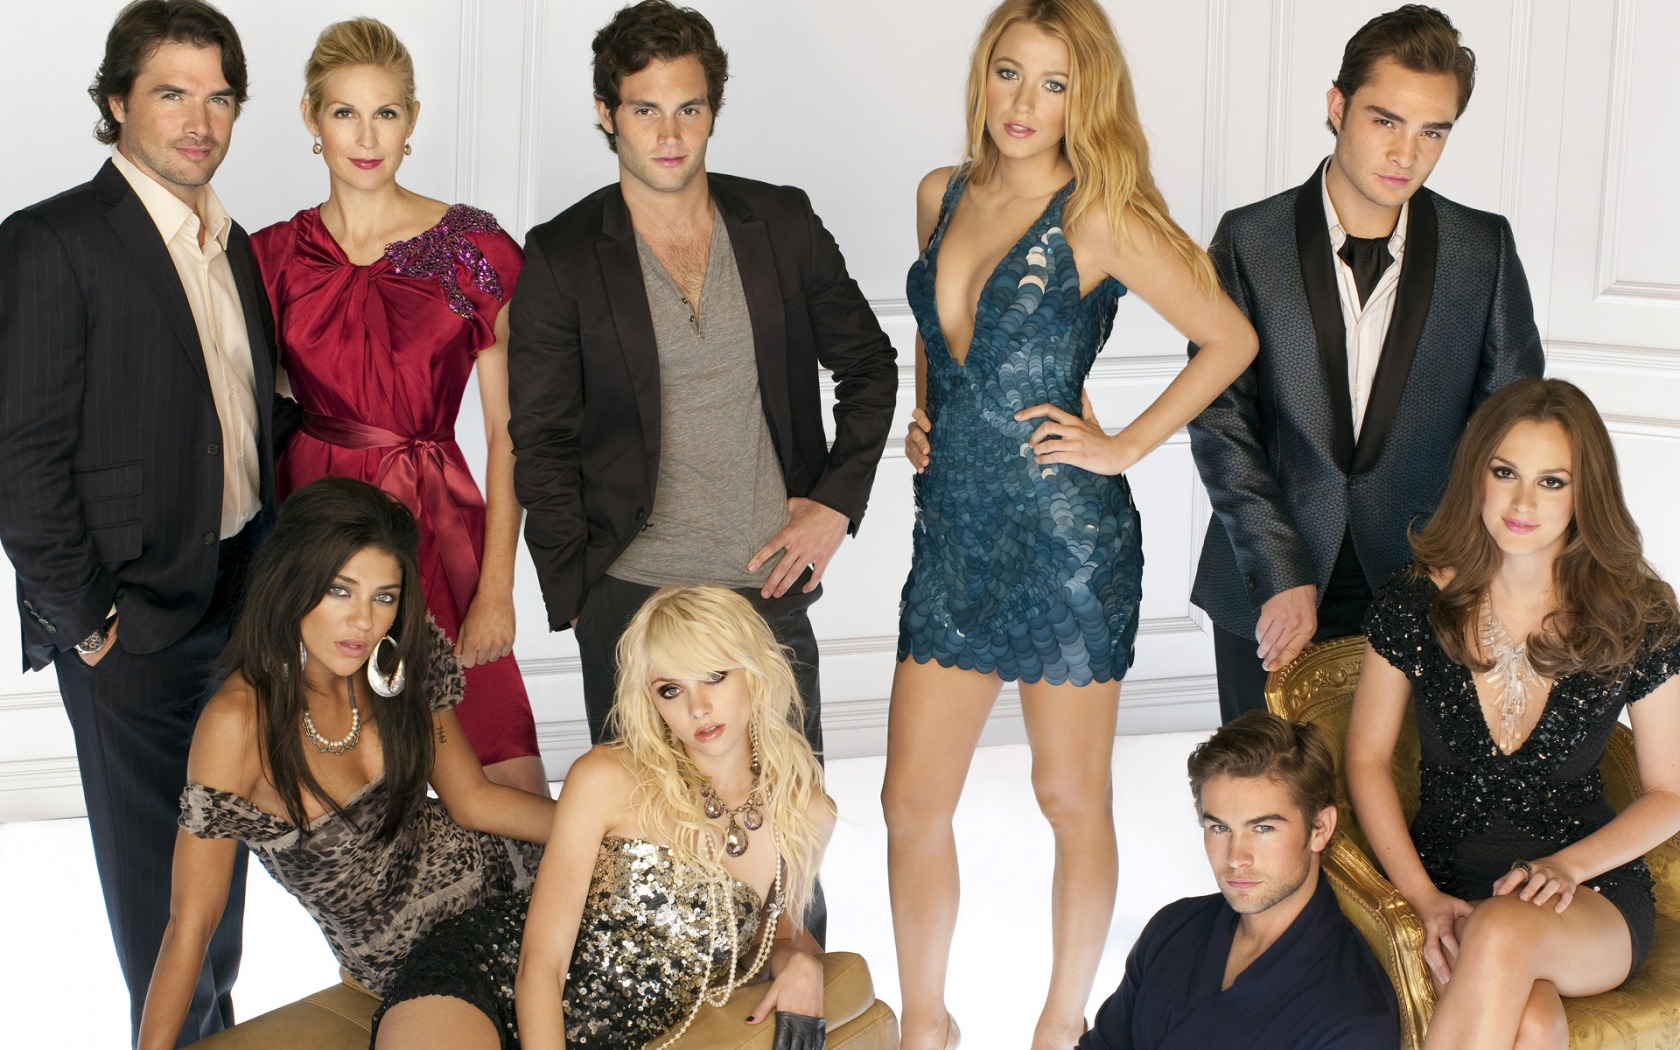 Gossip girl gossip girl season 3 promotional photo for danielle